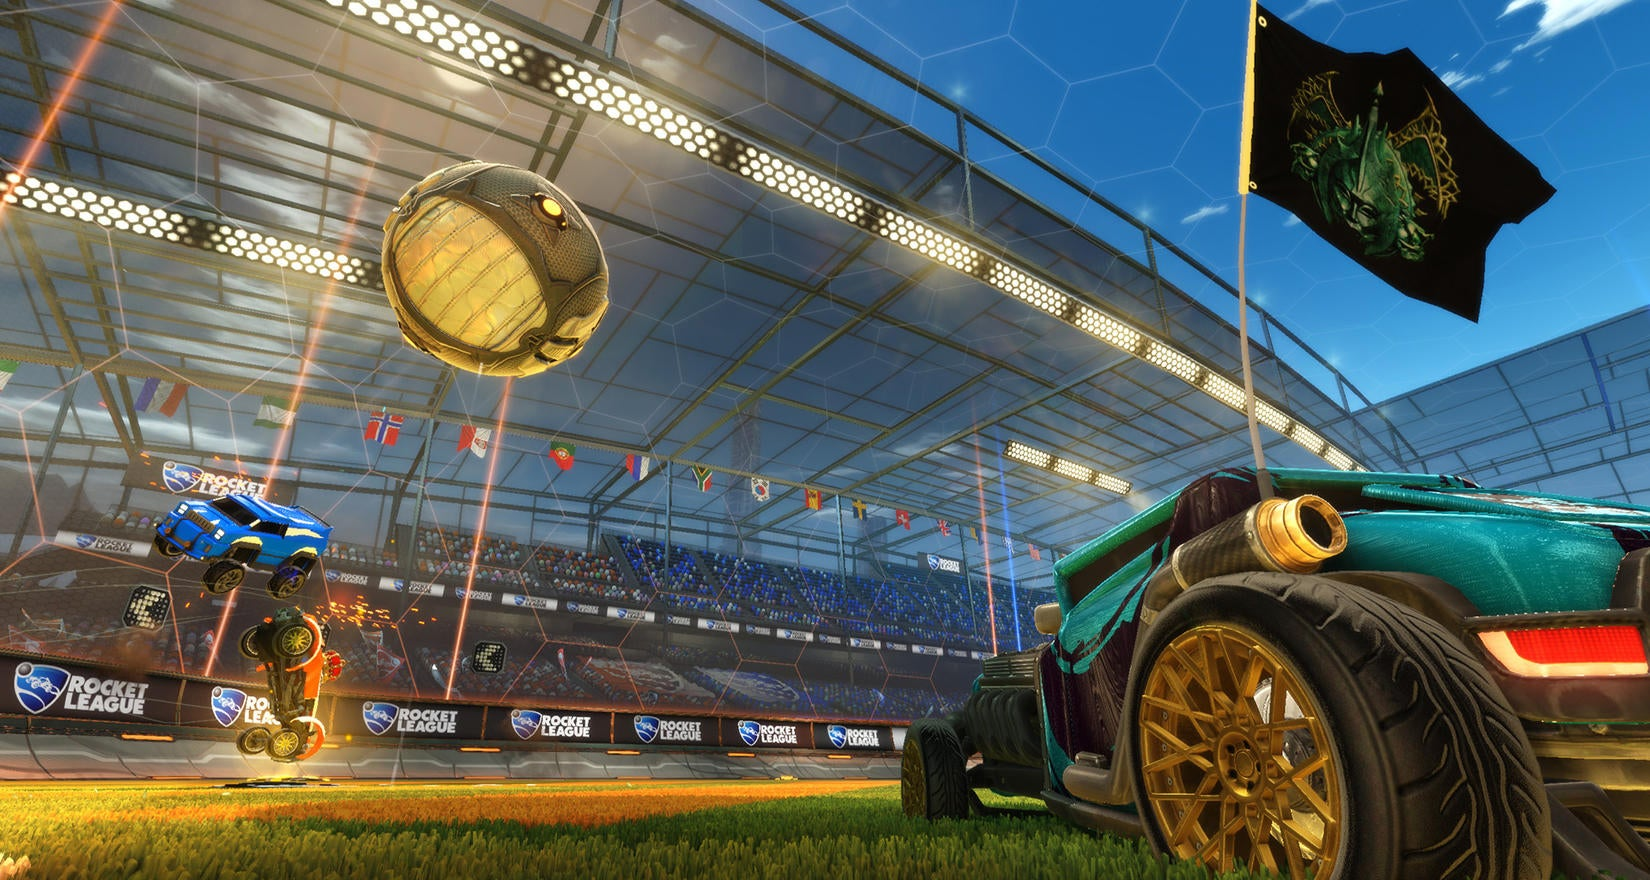 Nosgoth Flags in Rocket League Image